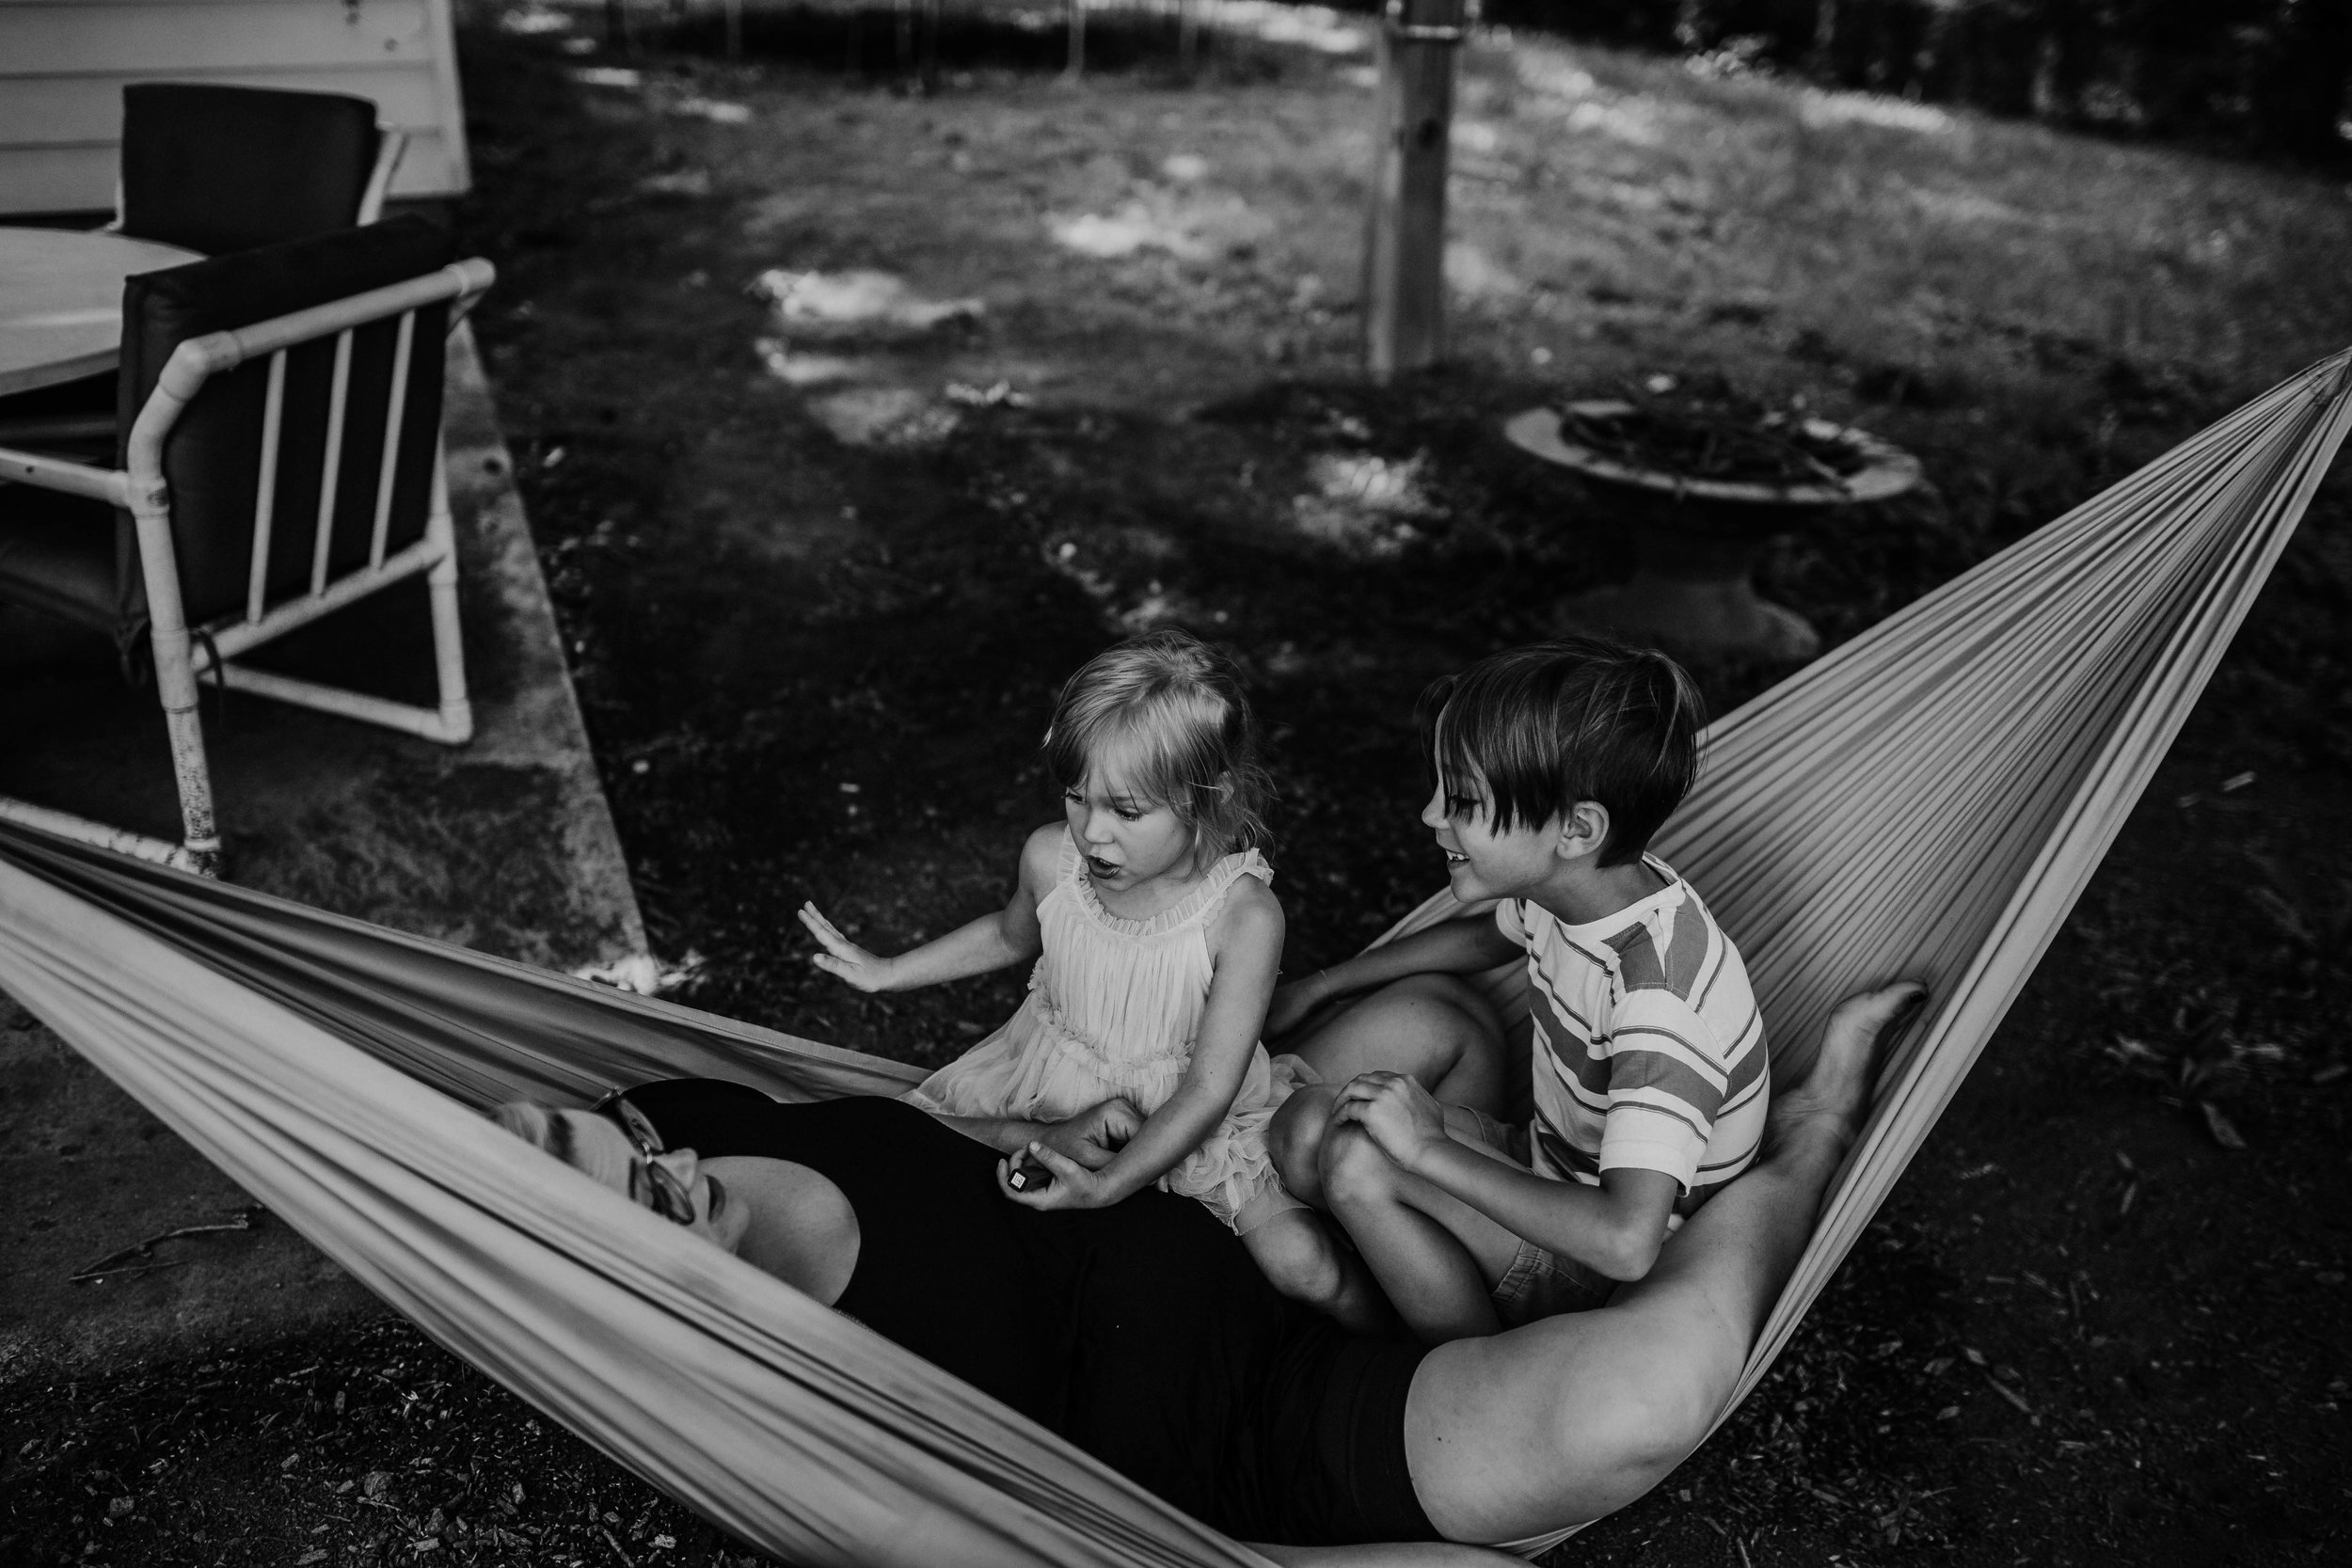 Mom and two of her kiddos sitting on the hammock, the young  daughter is explaining something very intense to mom.   The Carter Family : Summer in the Backyard | Hannahill Photography | Kansas City, MO | Family photography lifestyle photographer | Wedding photographer Durham North Carolina Raleigh | Birth photographer Documentary